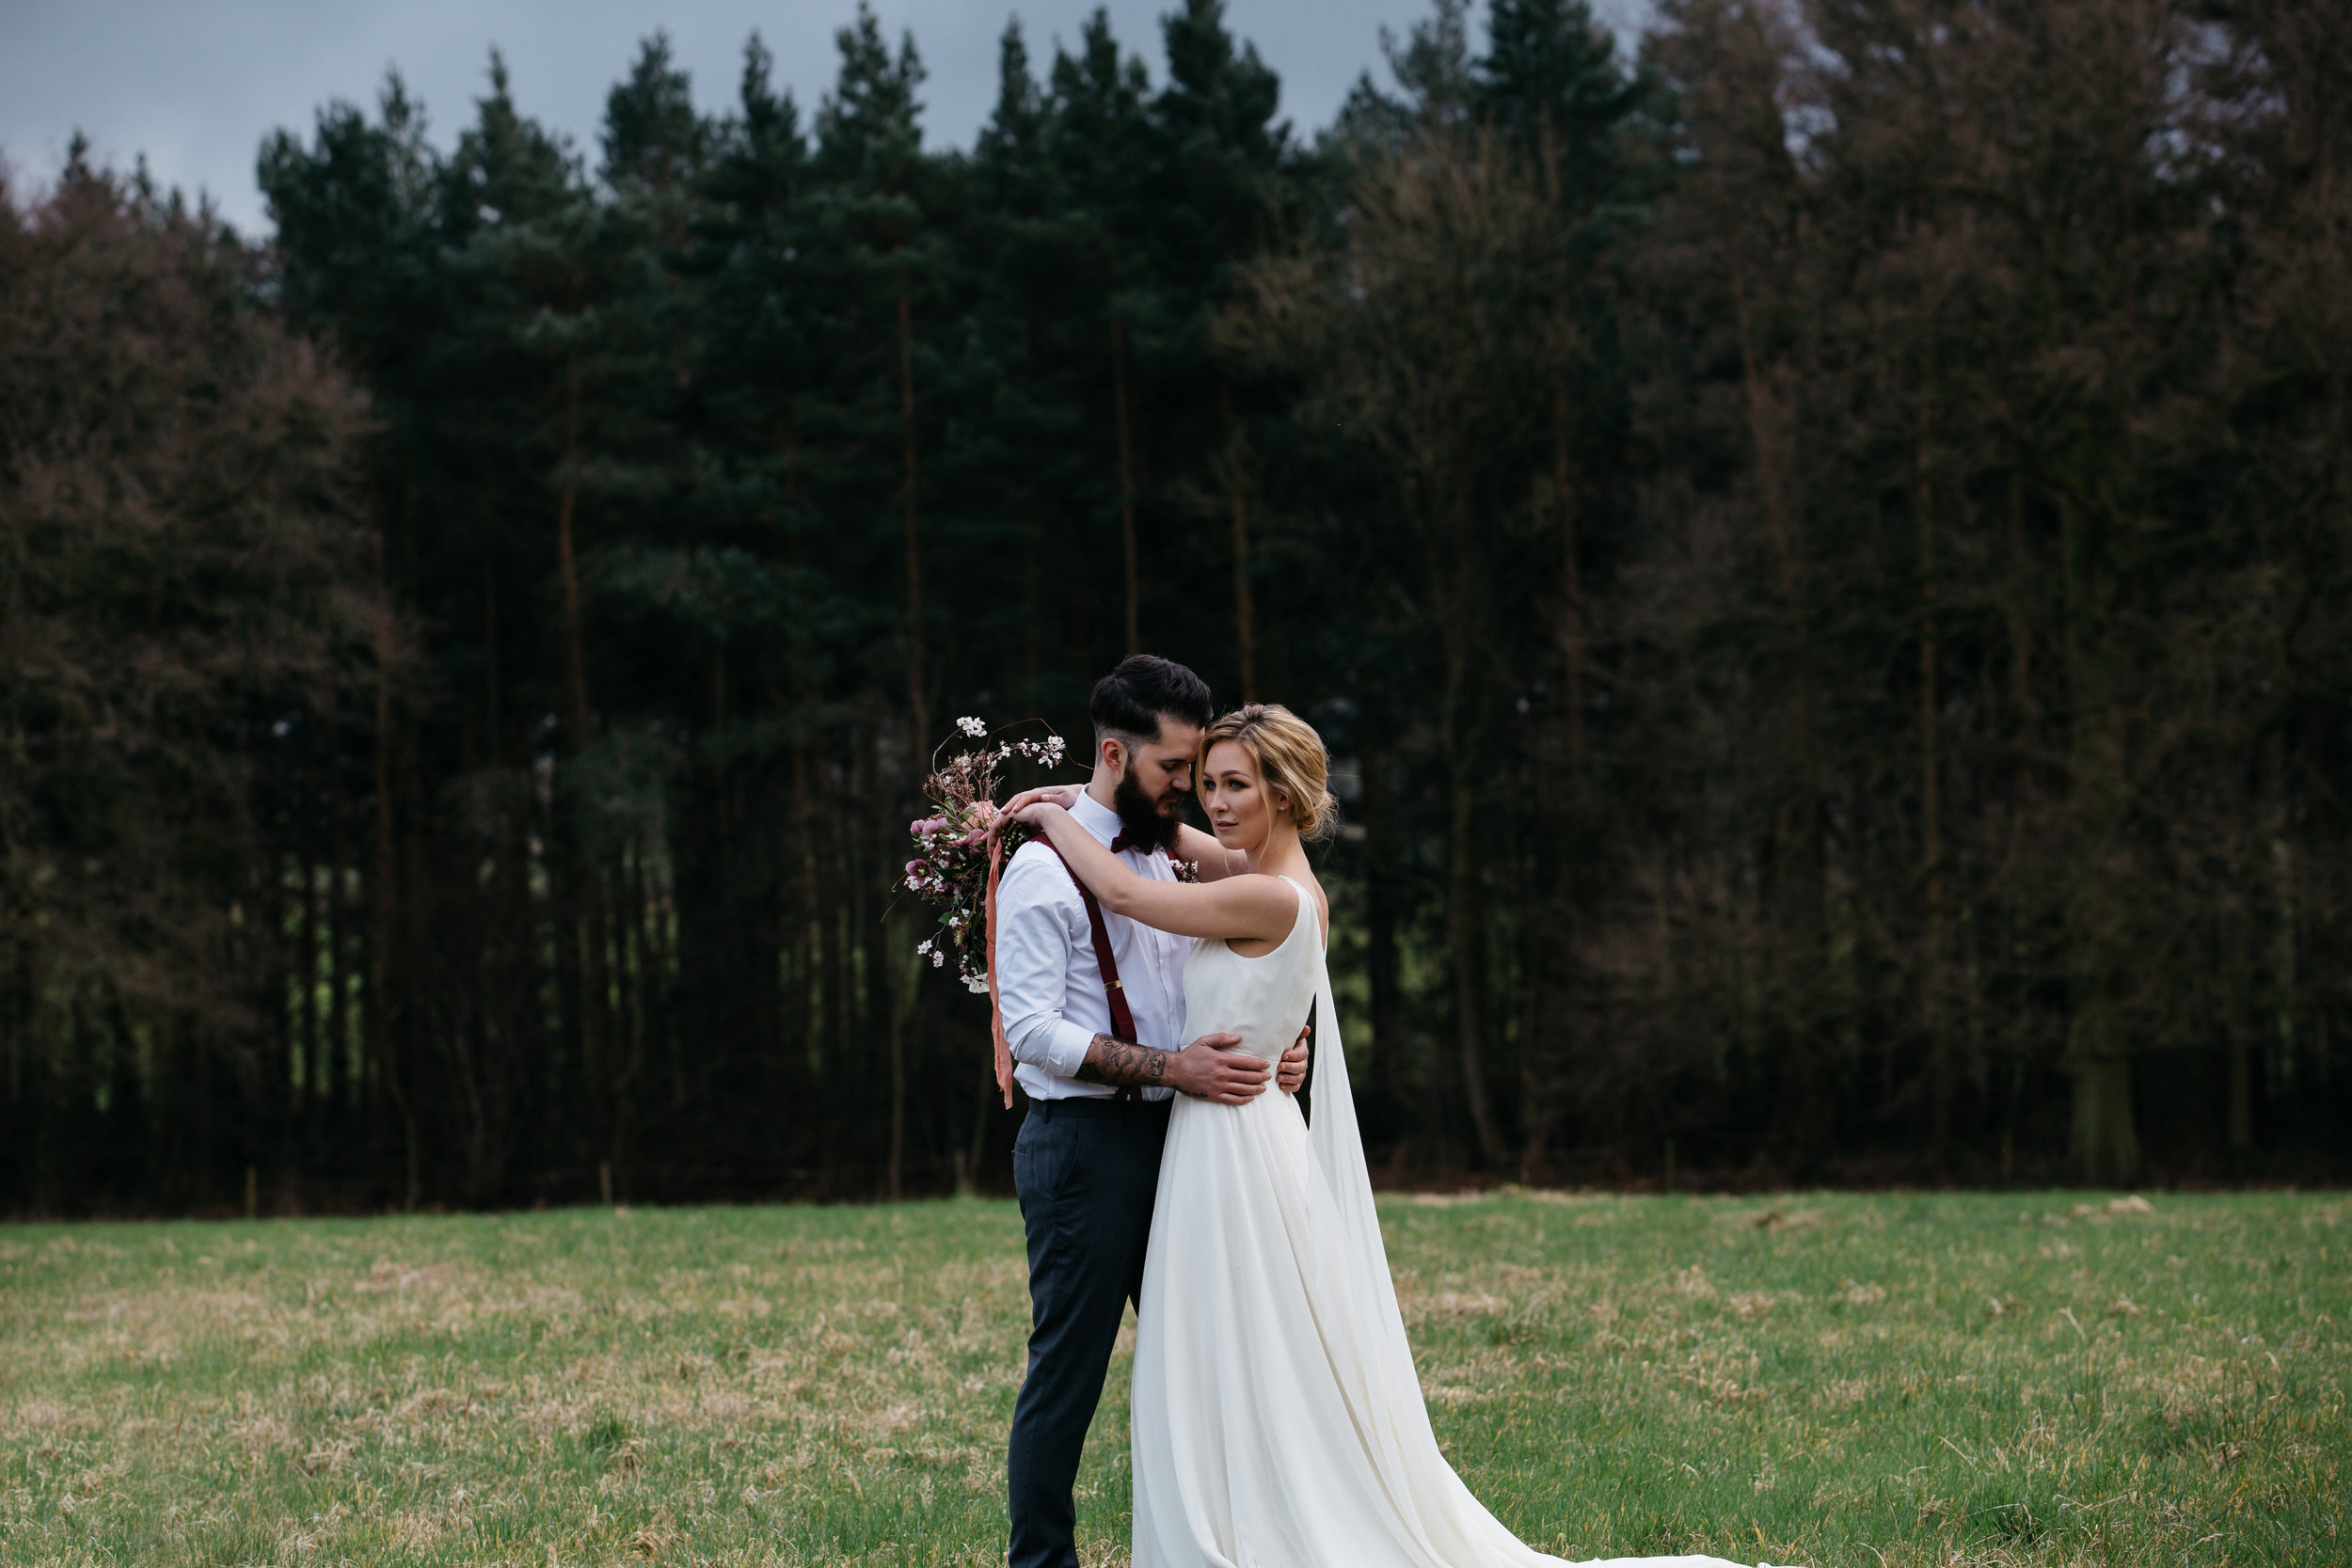 April & Chris at Camp Katur North Yorkshire Wedding